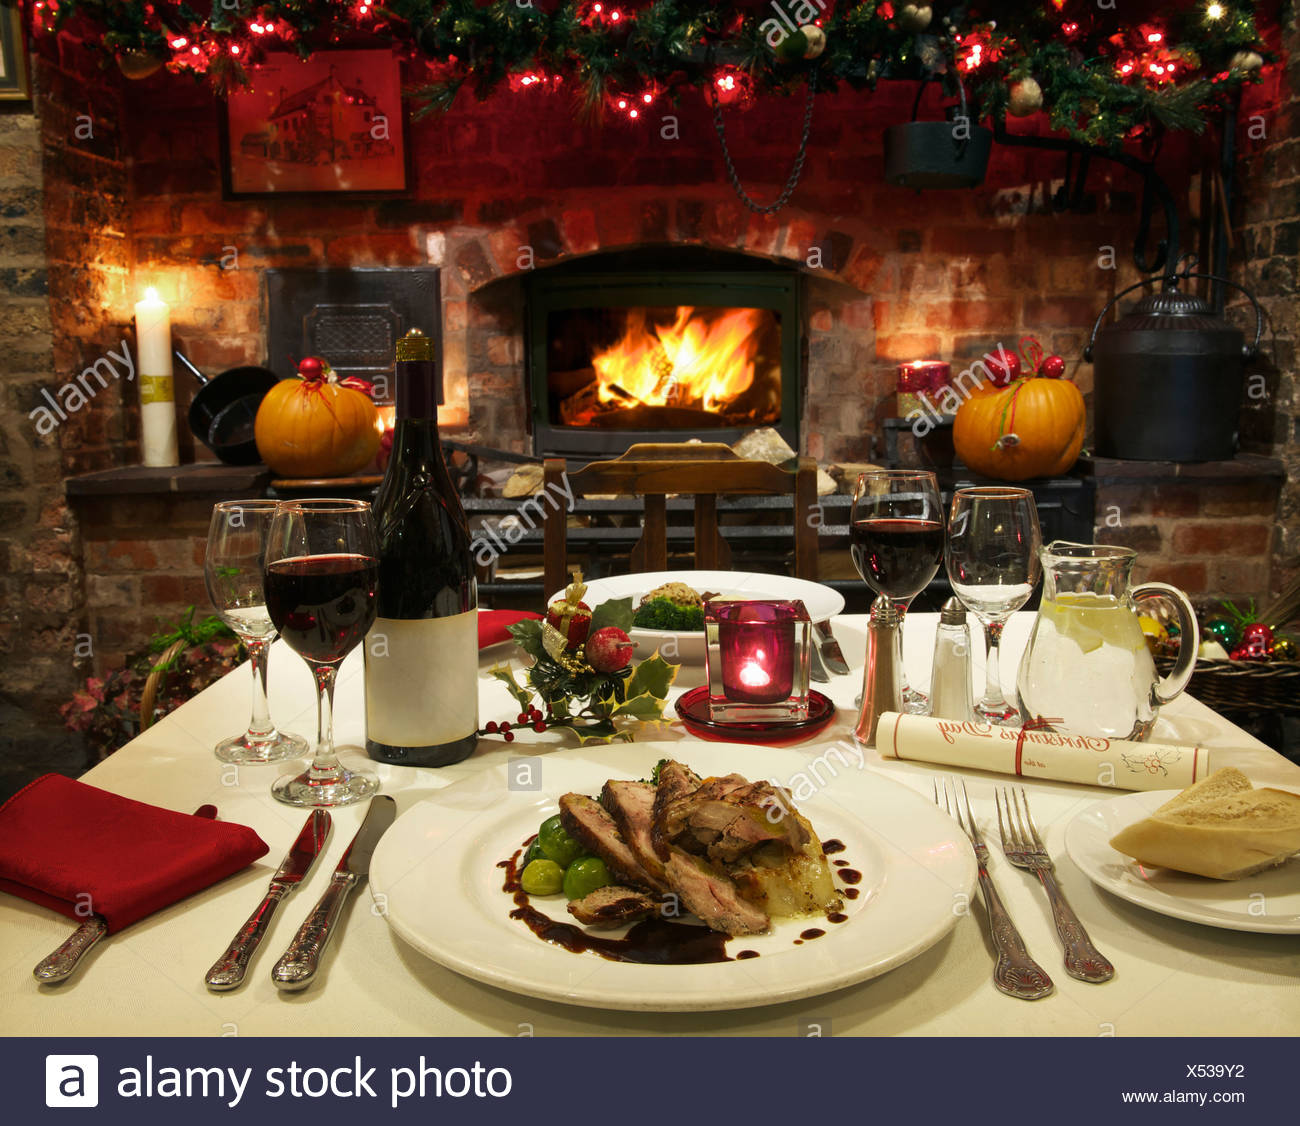 Table laid for Christmas dinner - Stock Image